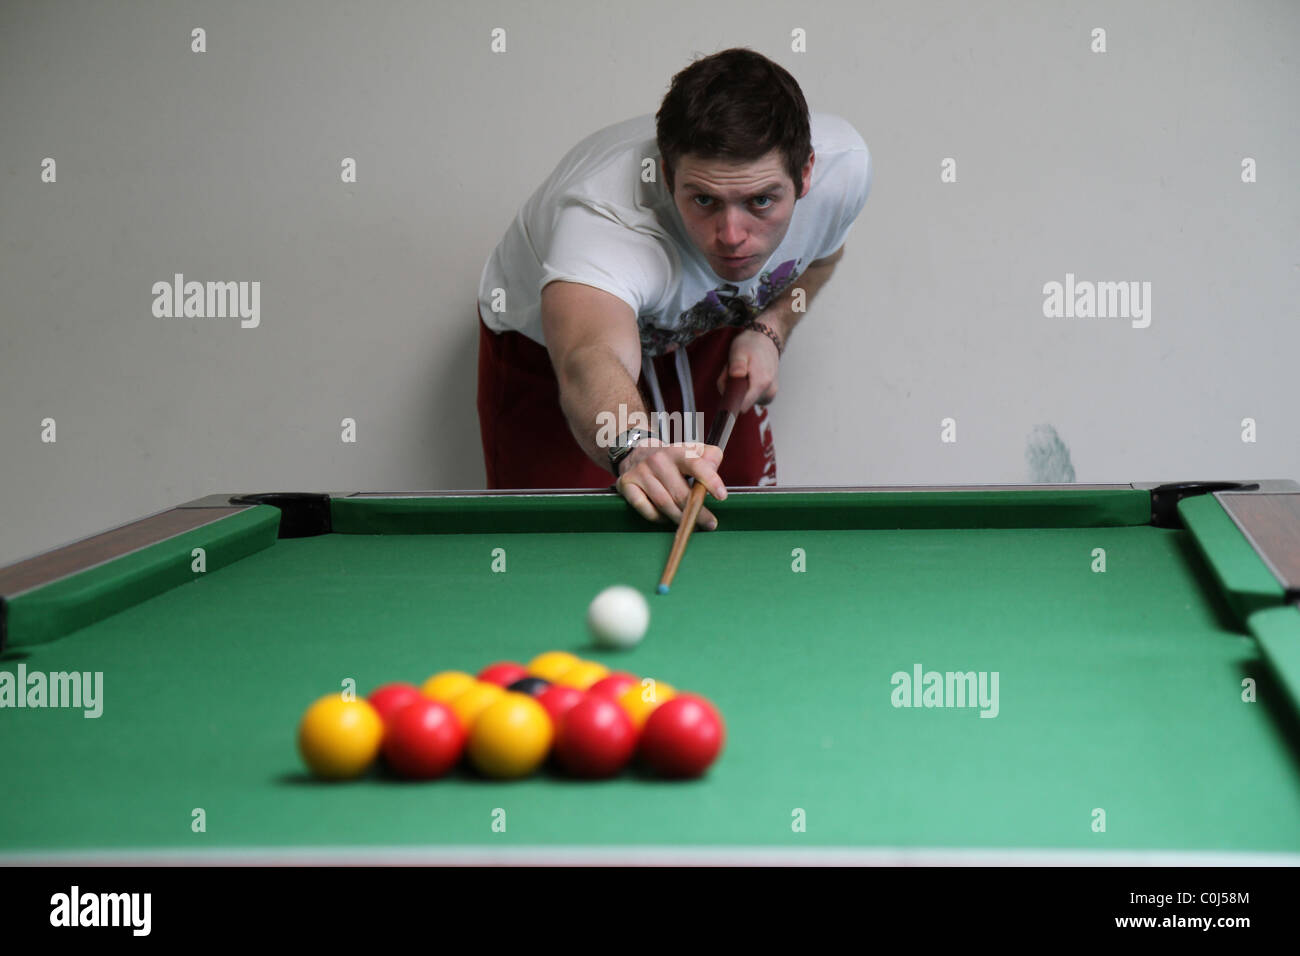 Man playing pool, billiards taking  the brake - Stock Image